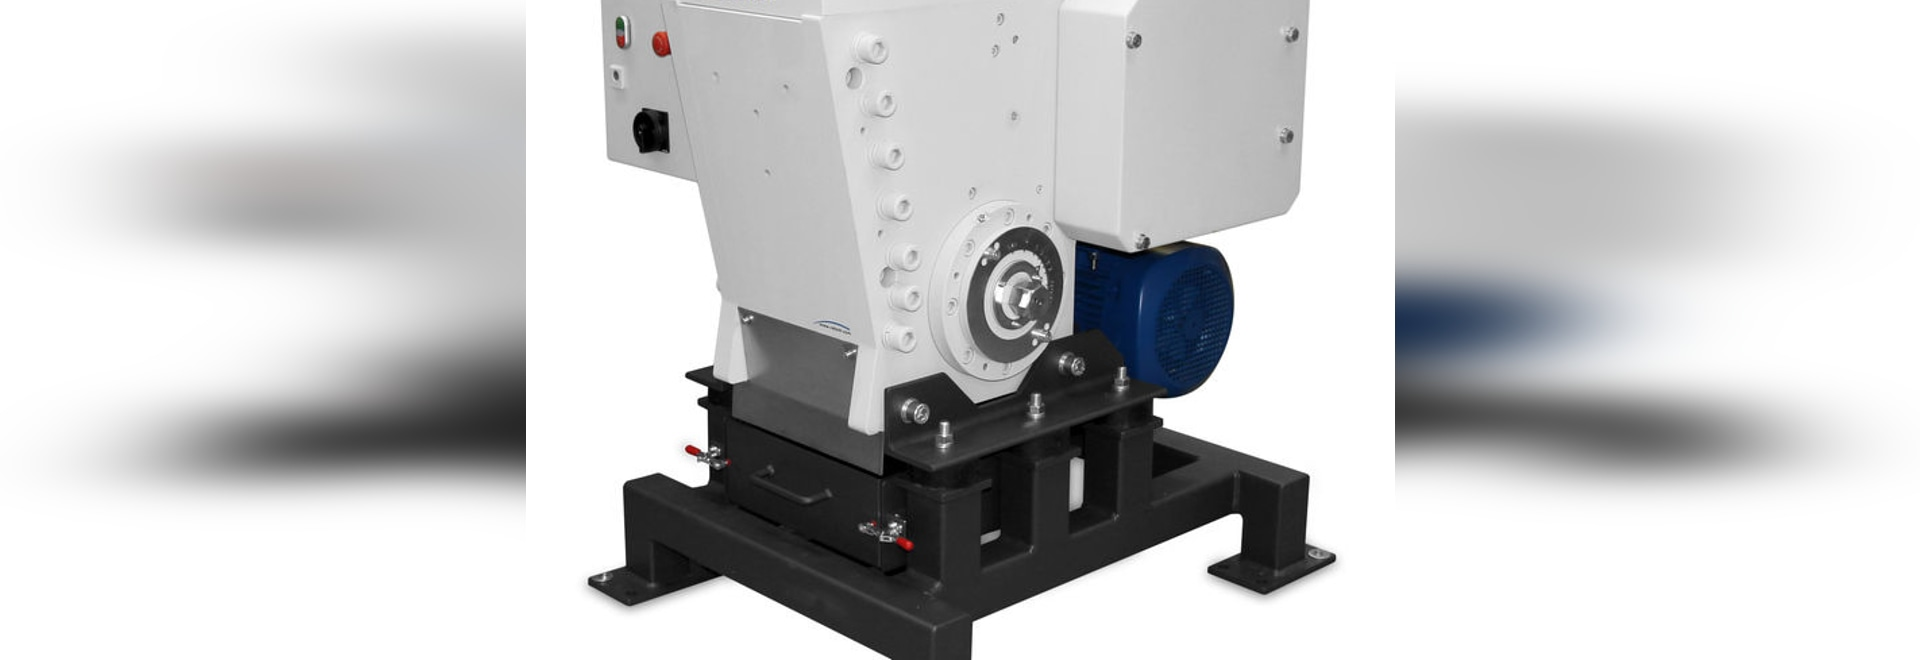 NEW: jaw crusher by Retsch